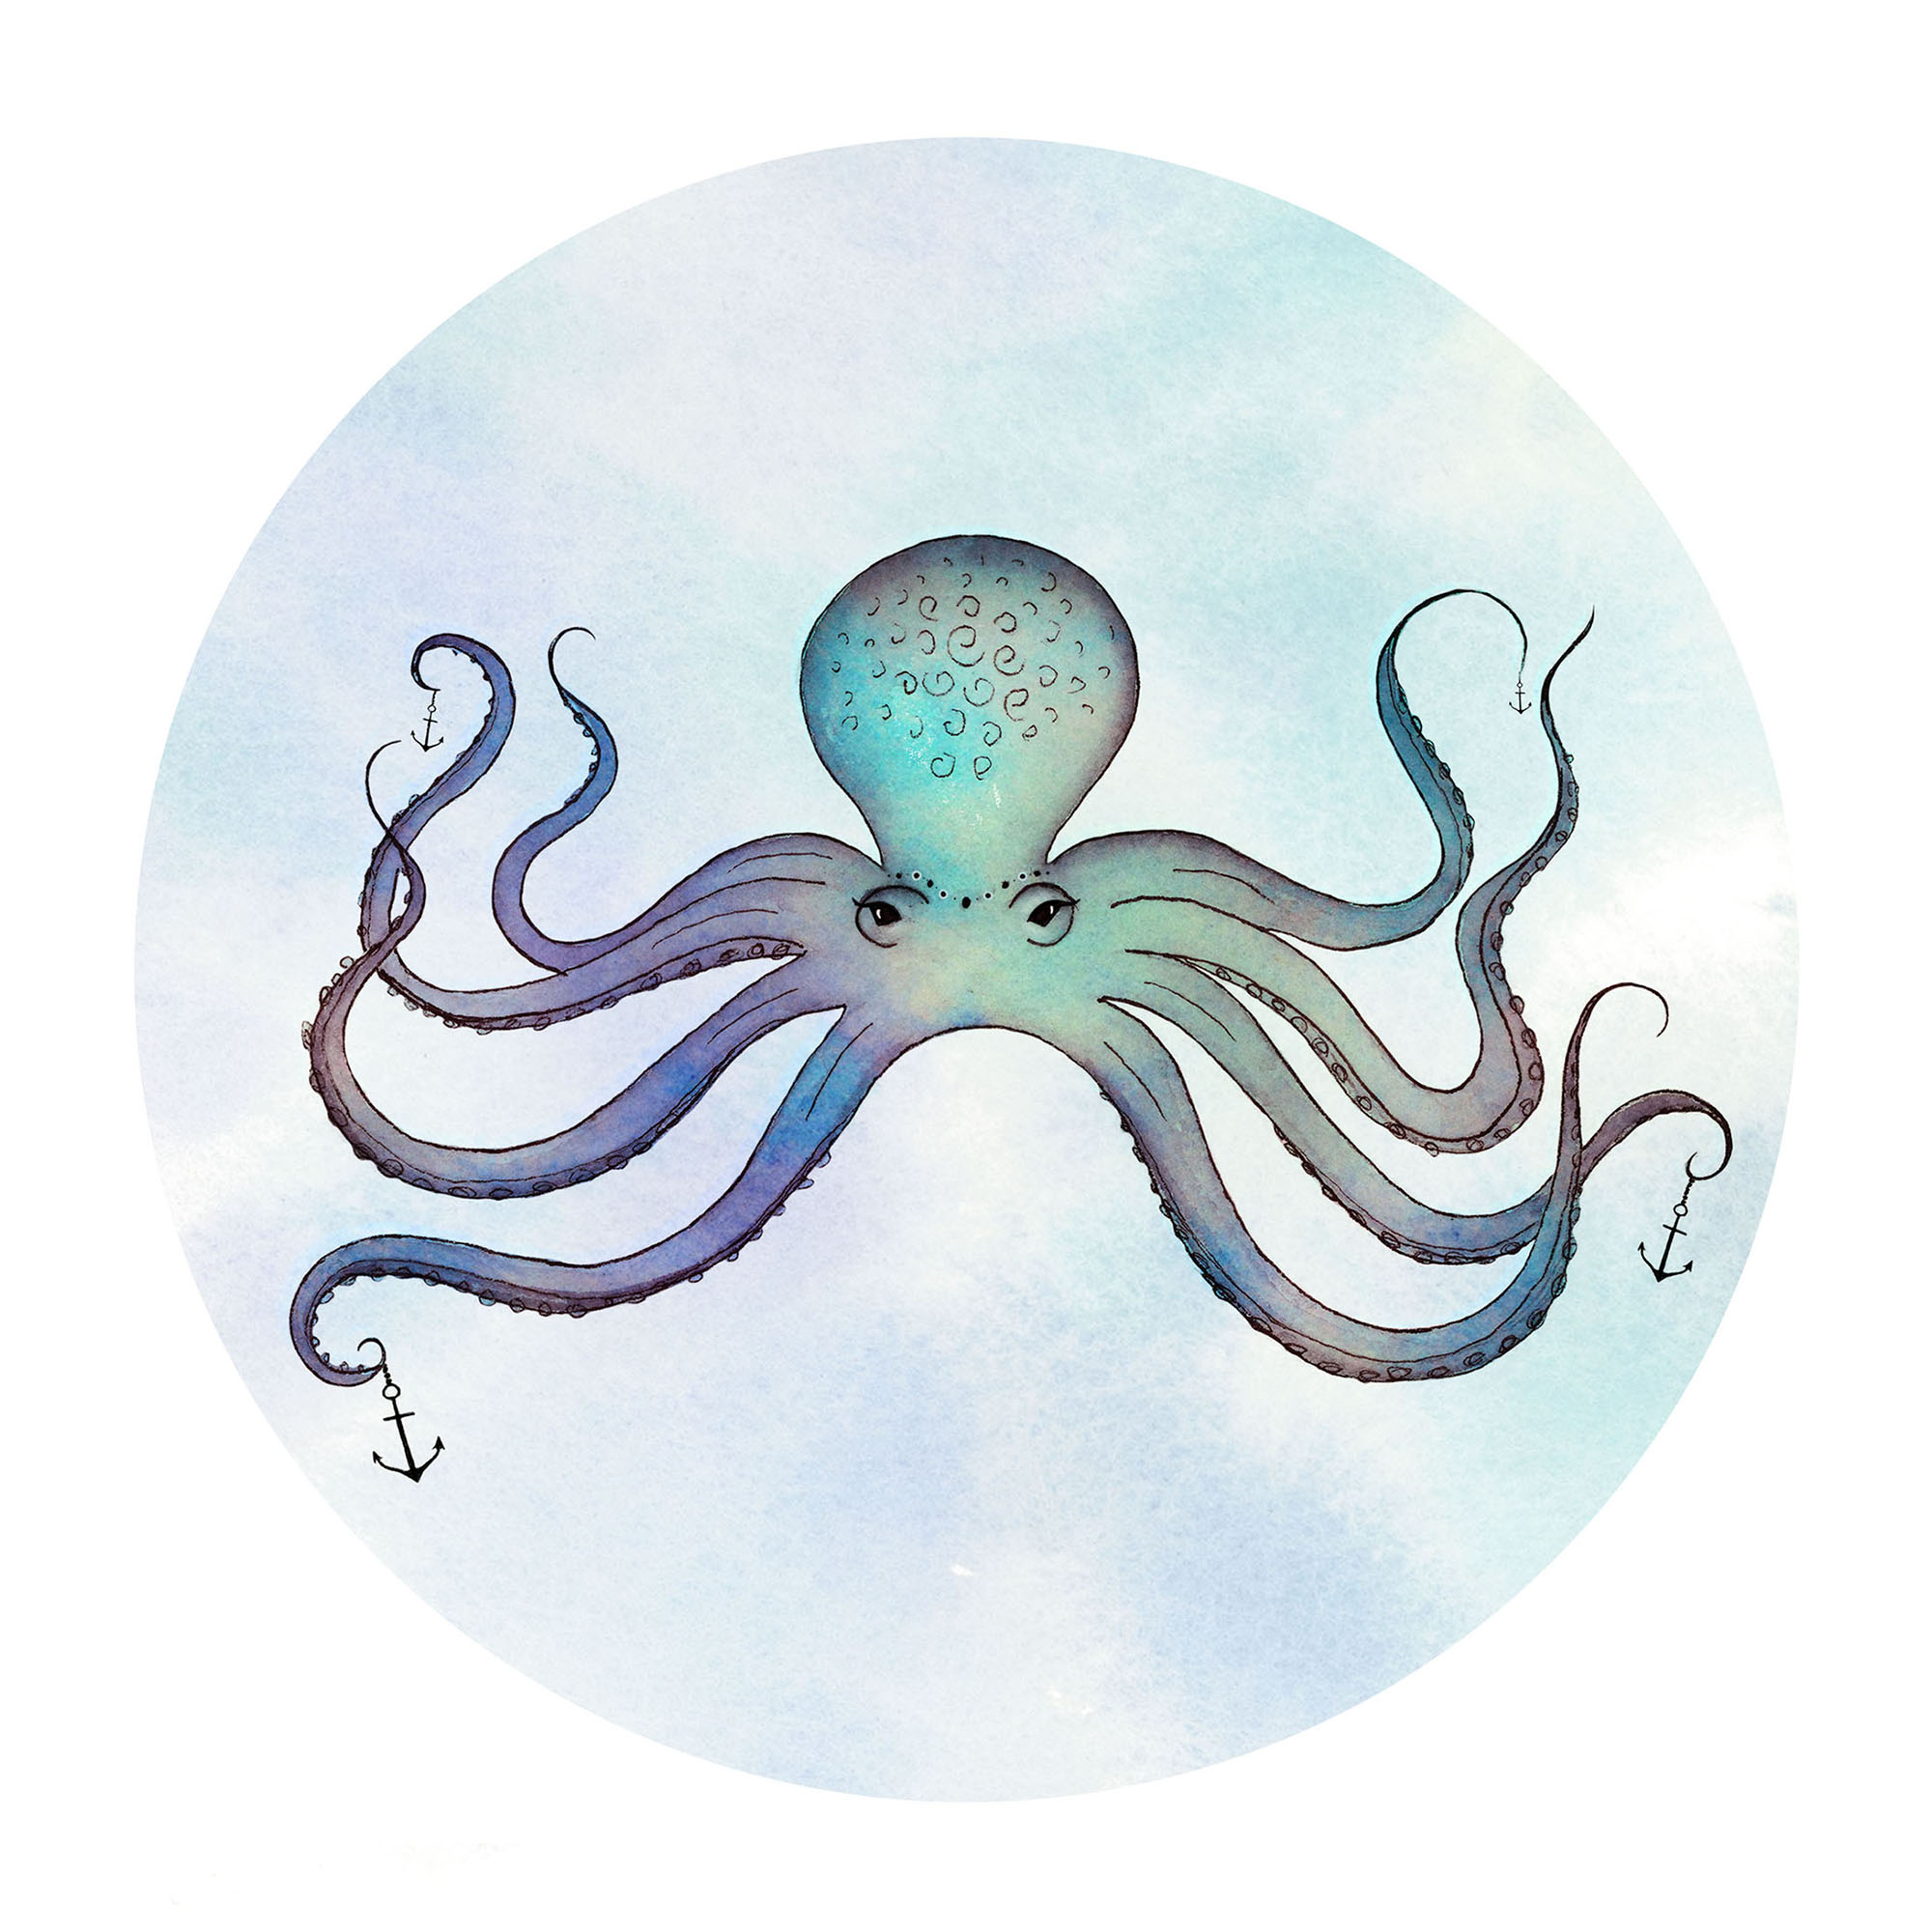 Sea Creatures Series: Octopus, Seahorses, and Jellyfish. Watercolor, ink, and digital media.